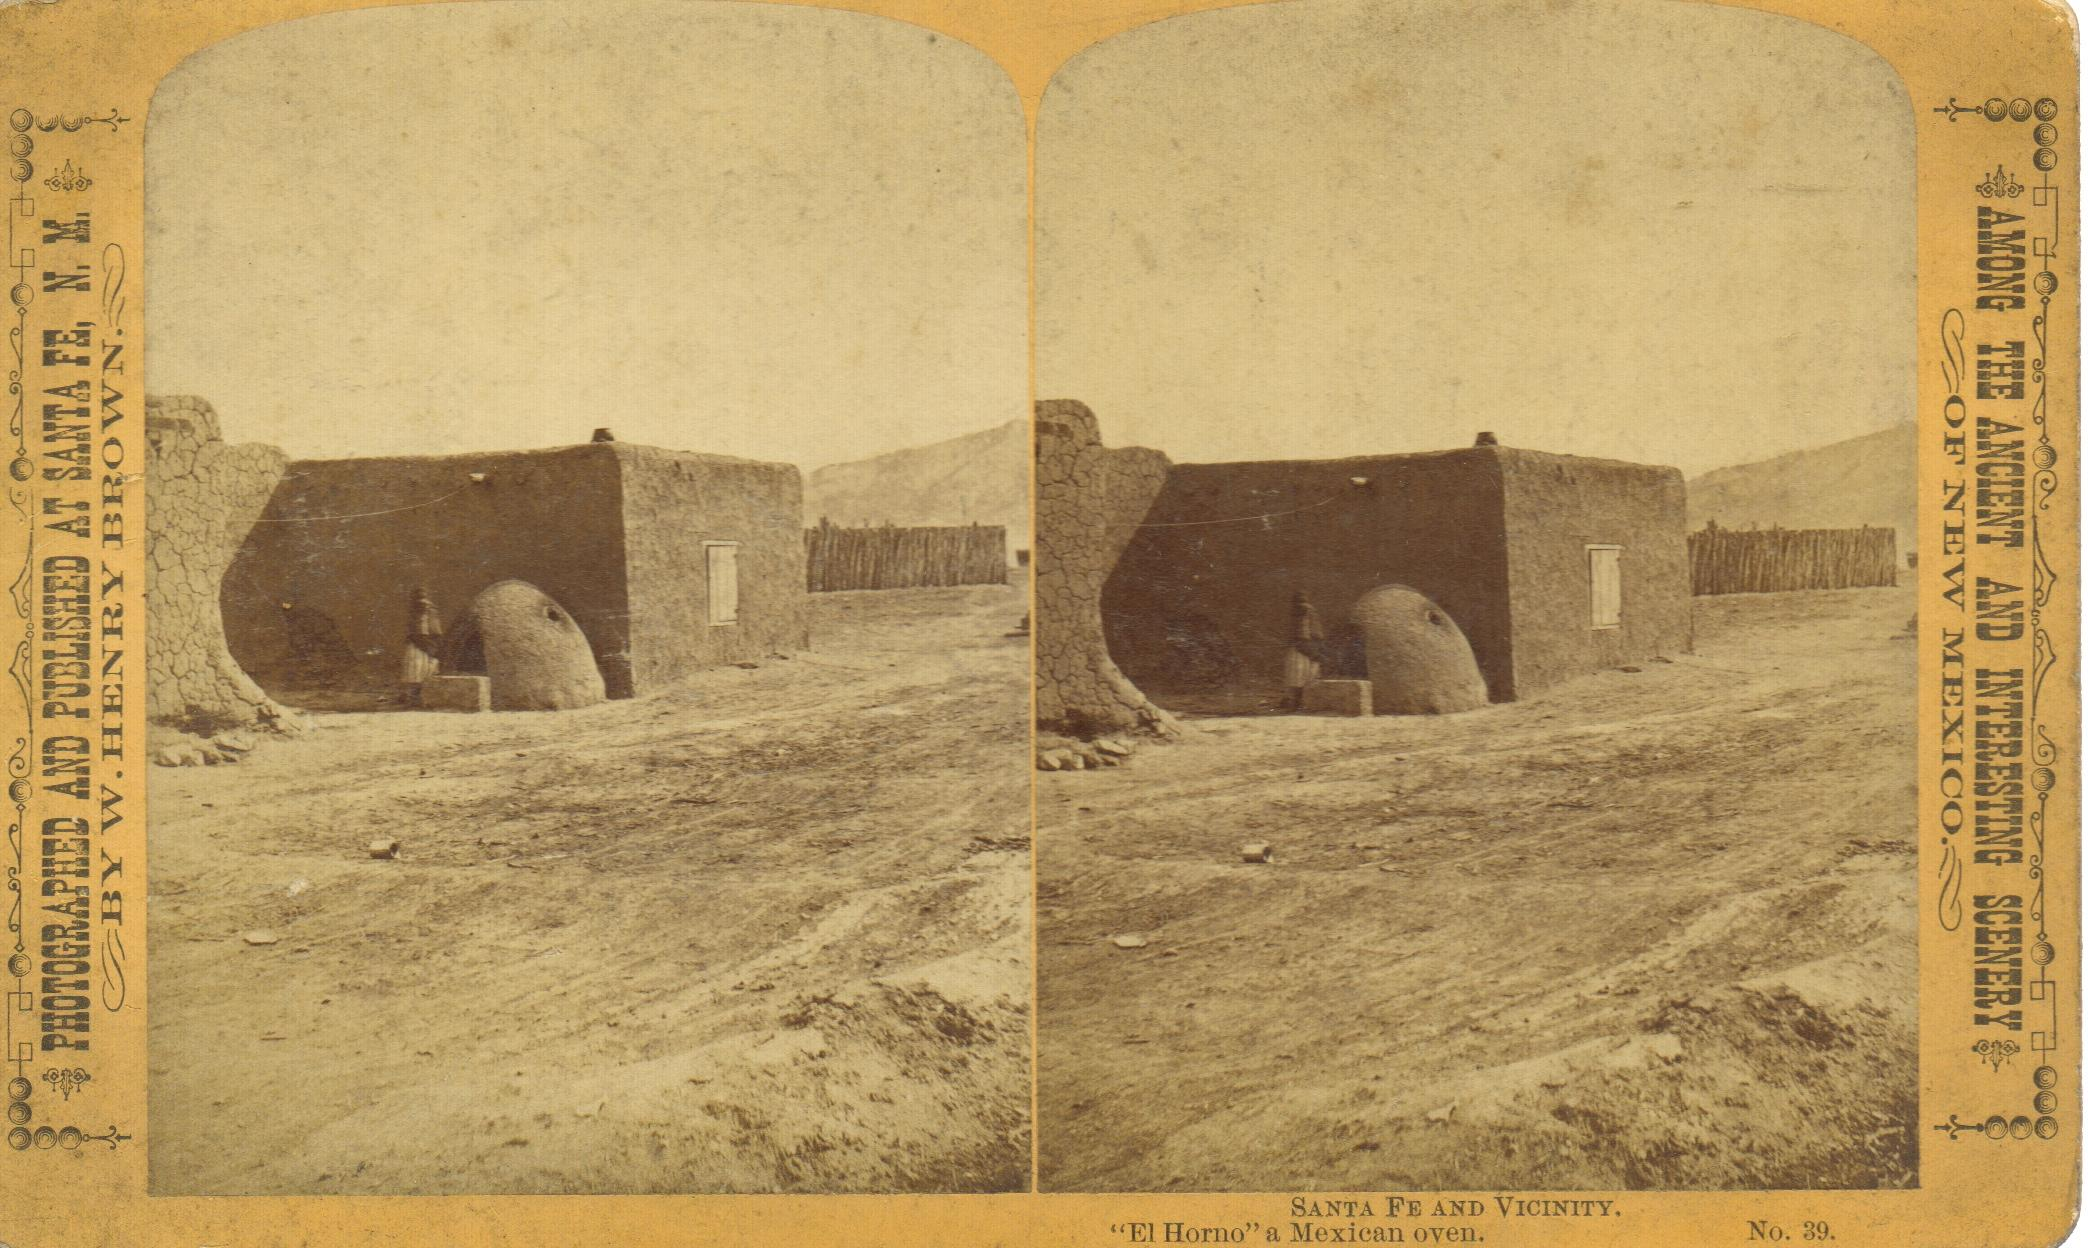 """Santa Fe and Vicinity. """"""""El Horno"""""""" a Mexican Oven No. 39 Stereoview Brown, W. Henry Very Good"""